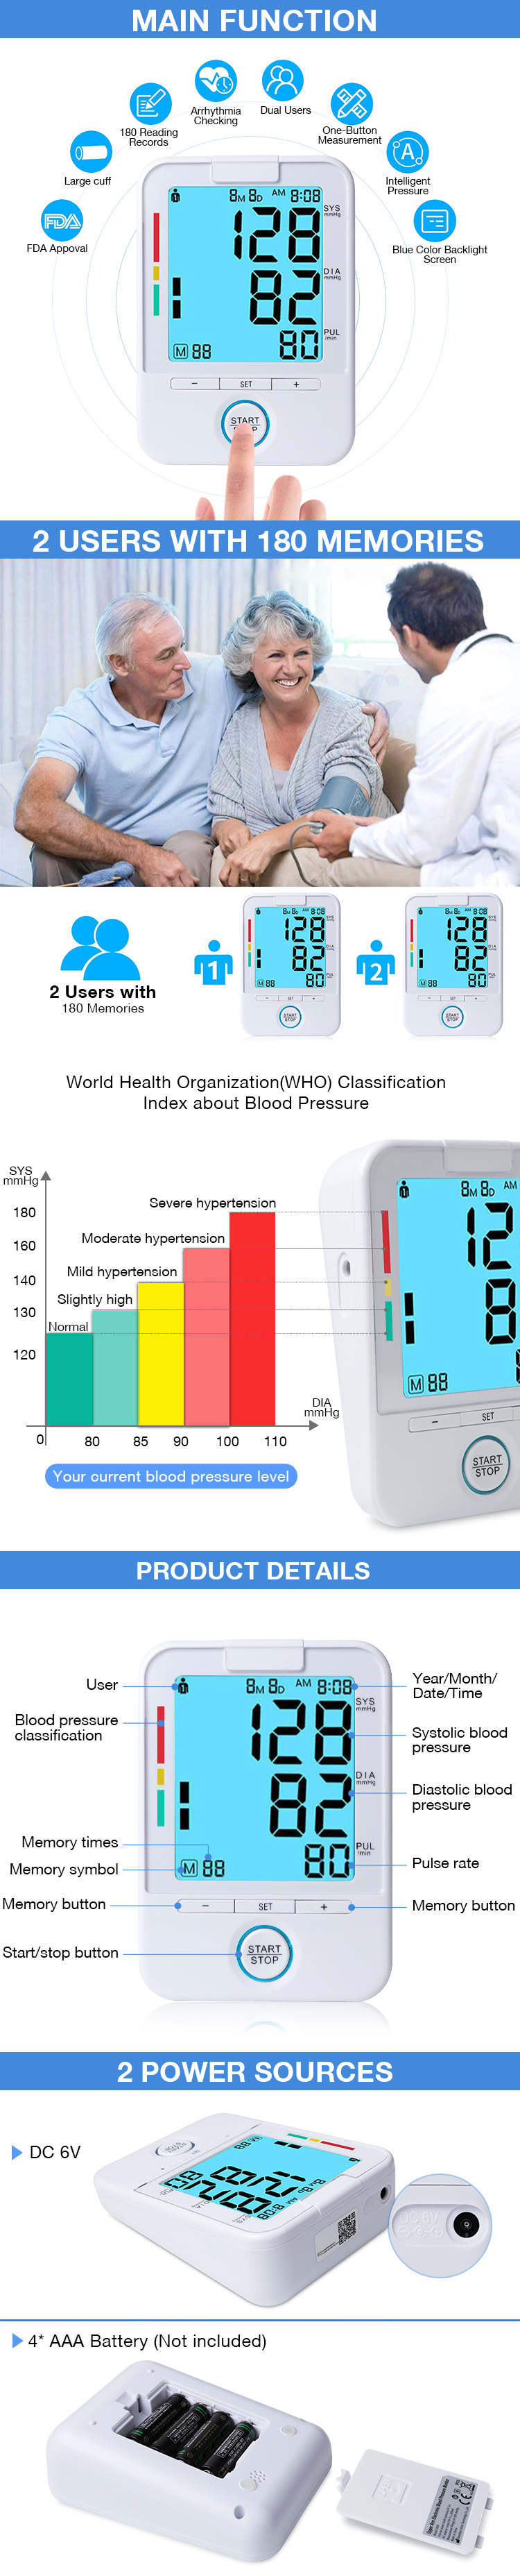 XY01 BP Machine Price Ambulatory Automatic Manual Wrist Watch Digital Blood Pressure Monitor Sale